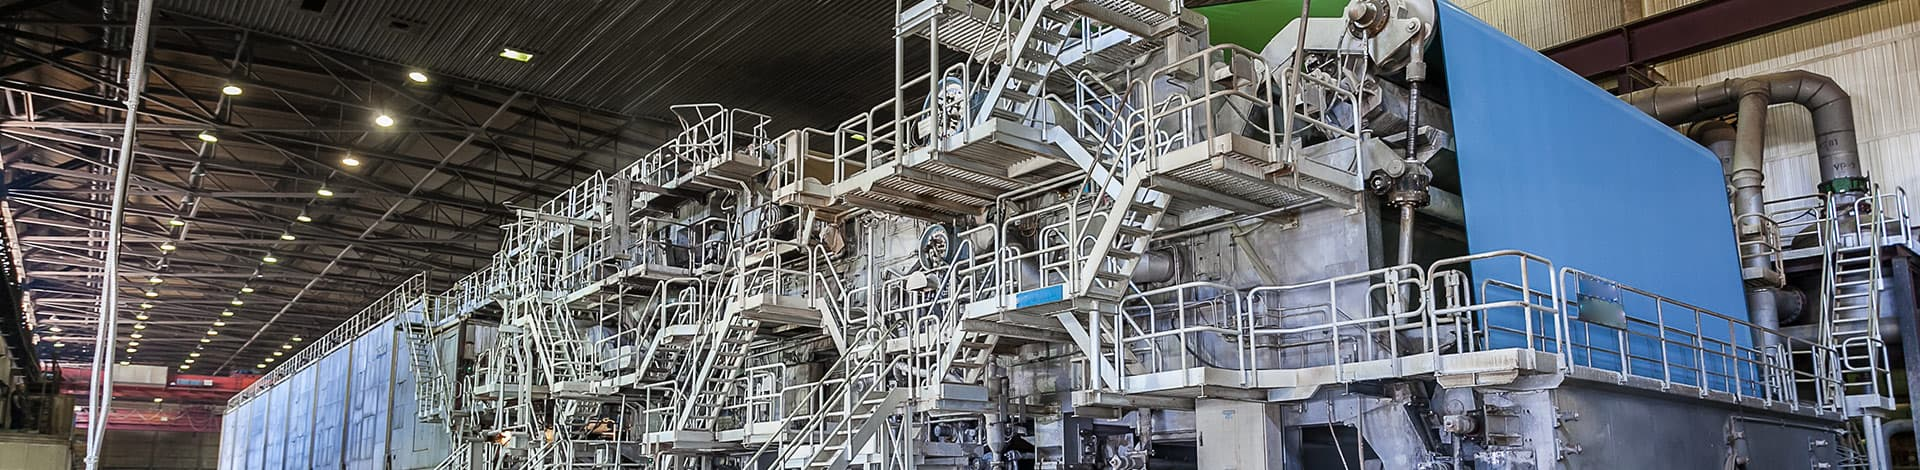 Trusted by the World's Largest Paper Mills & Converters